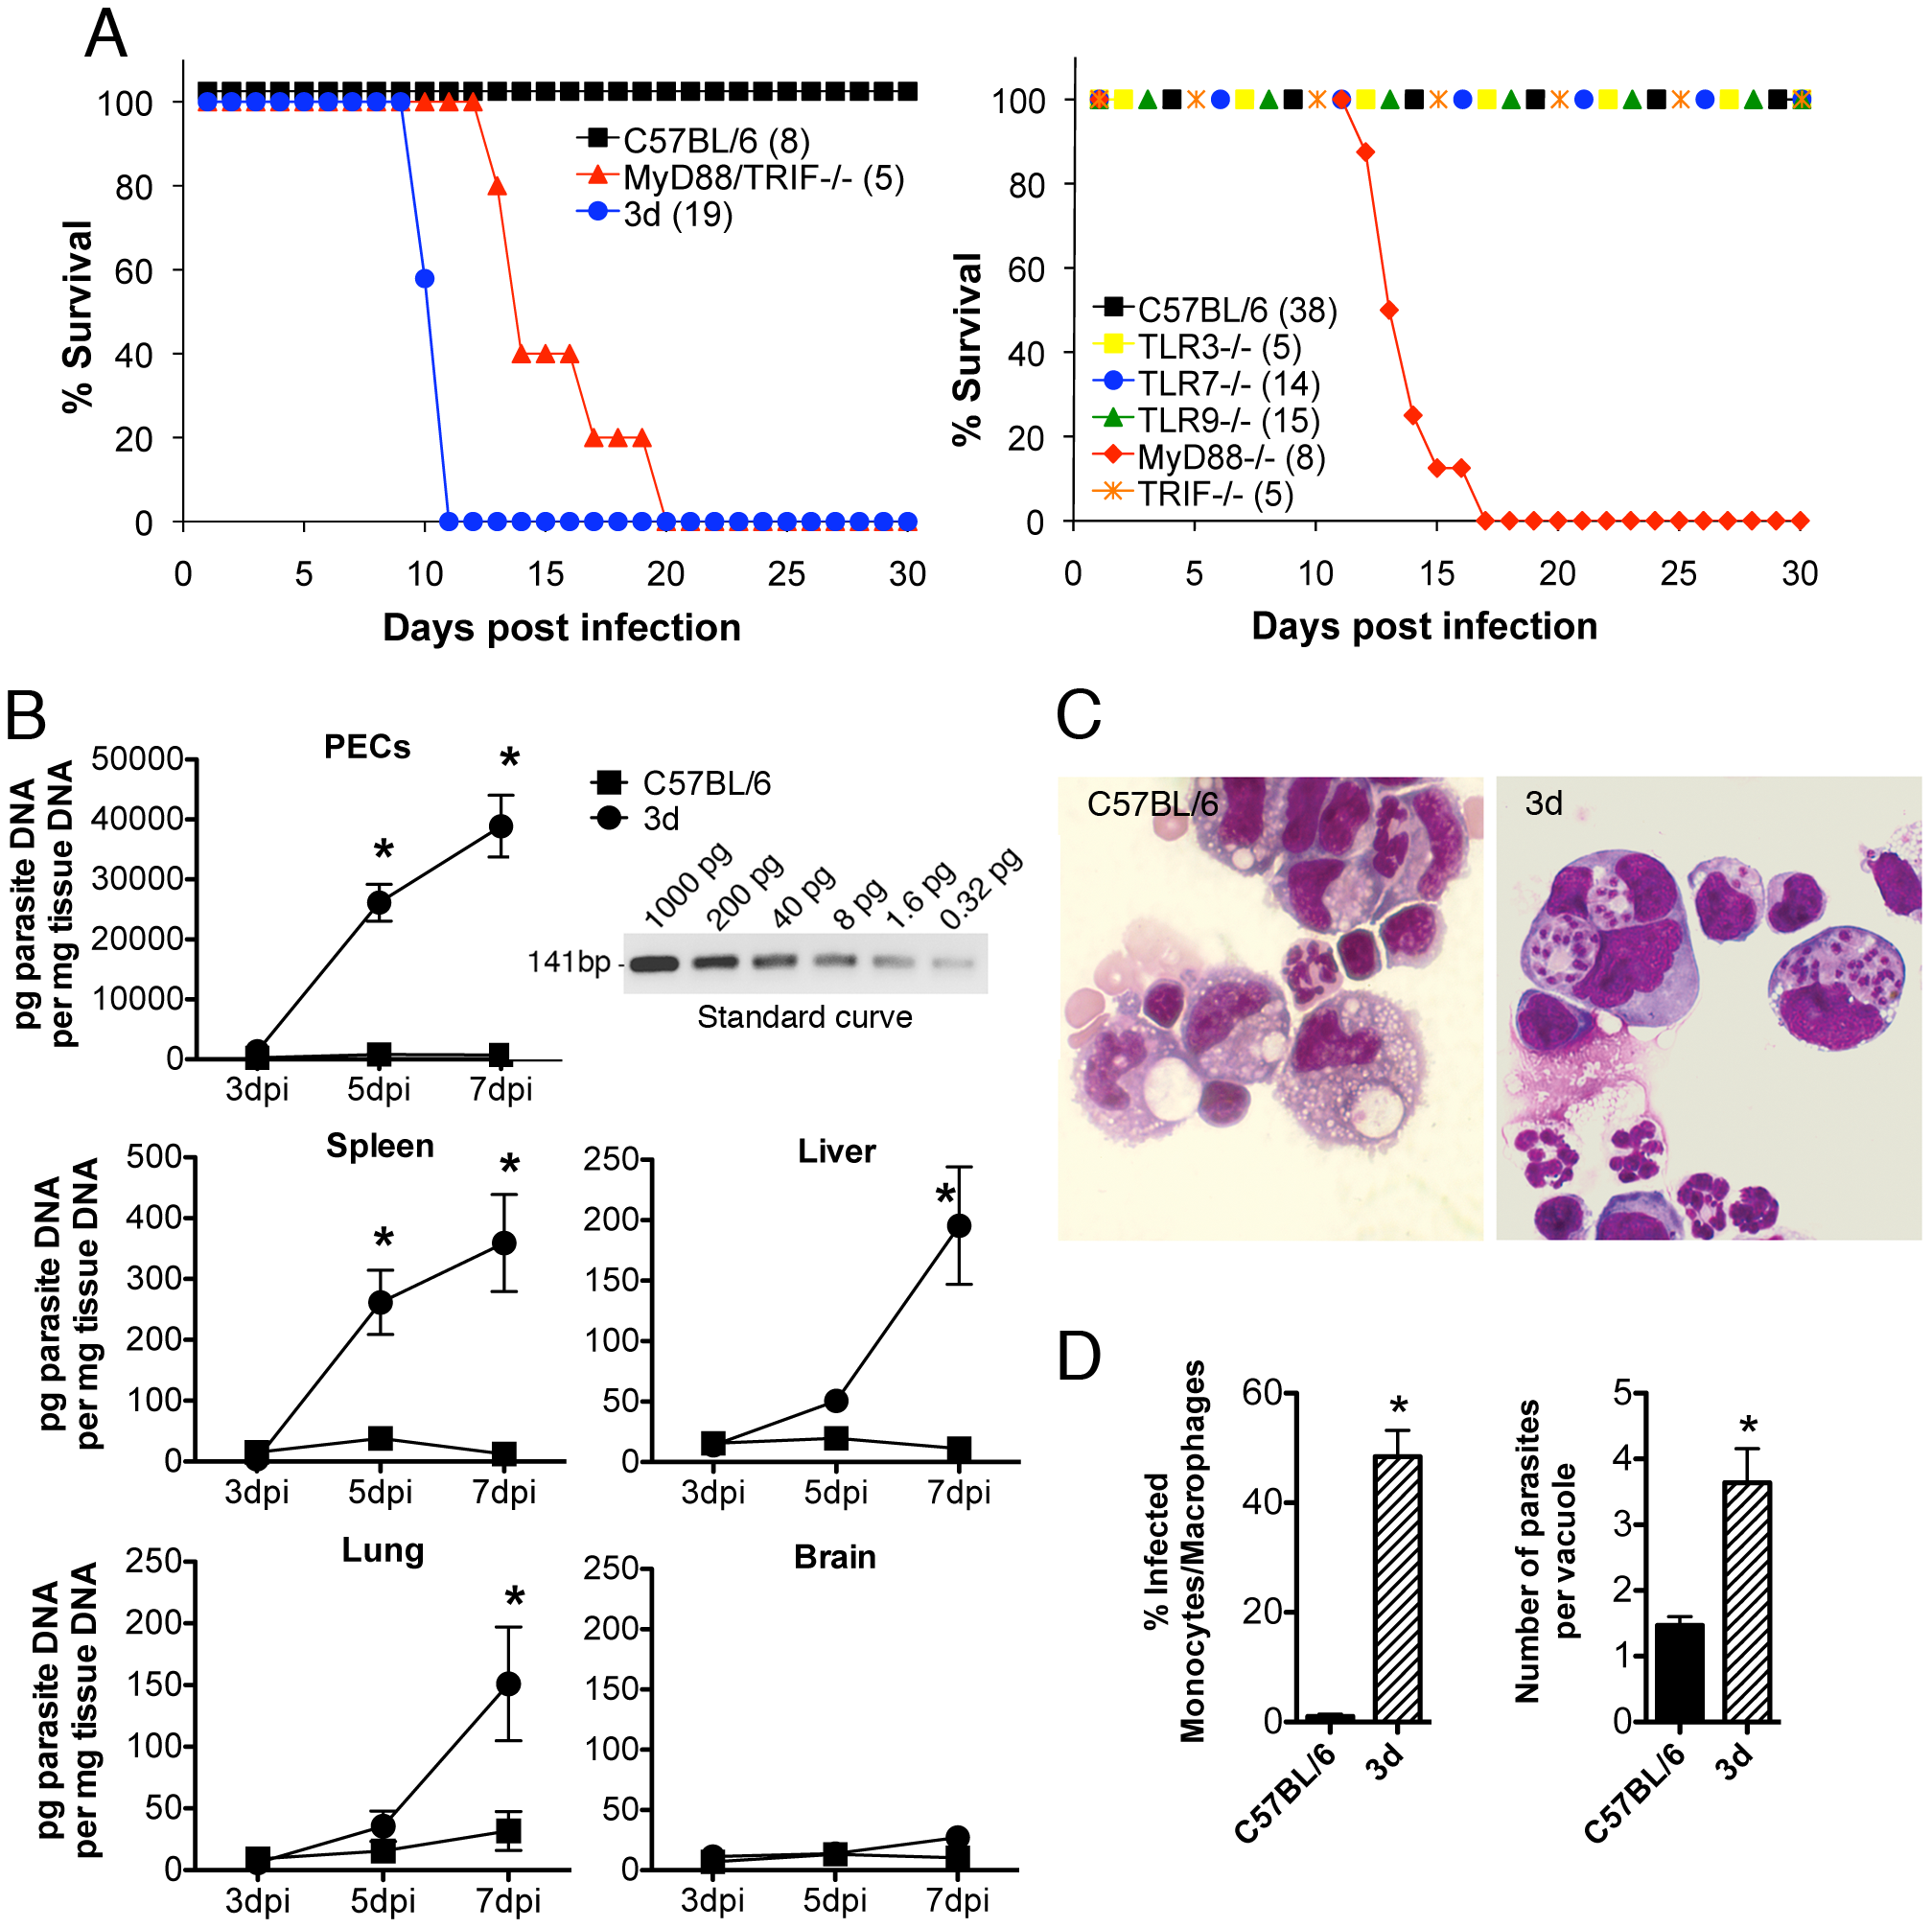 3d mice are highly susceptible to infection with <i>T. gondii</i> and succumb due to excessive parasite burden.